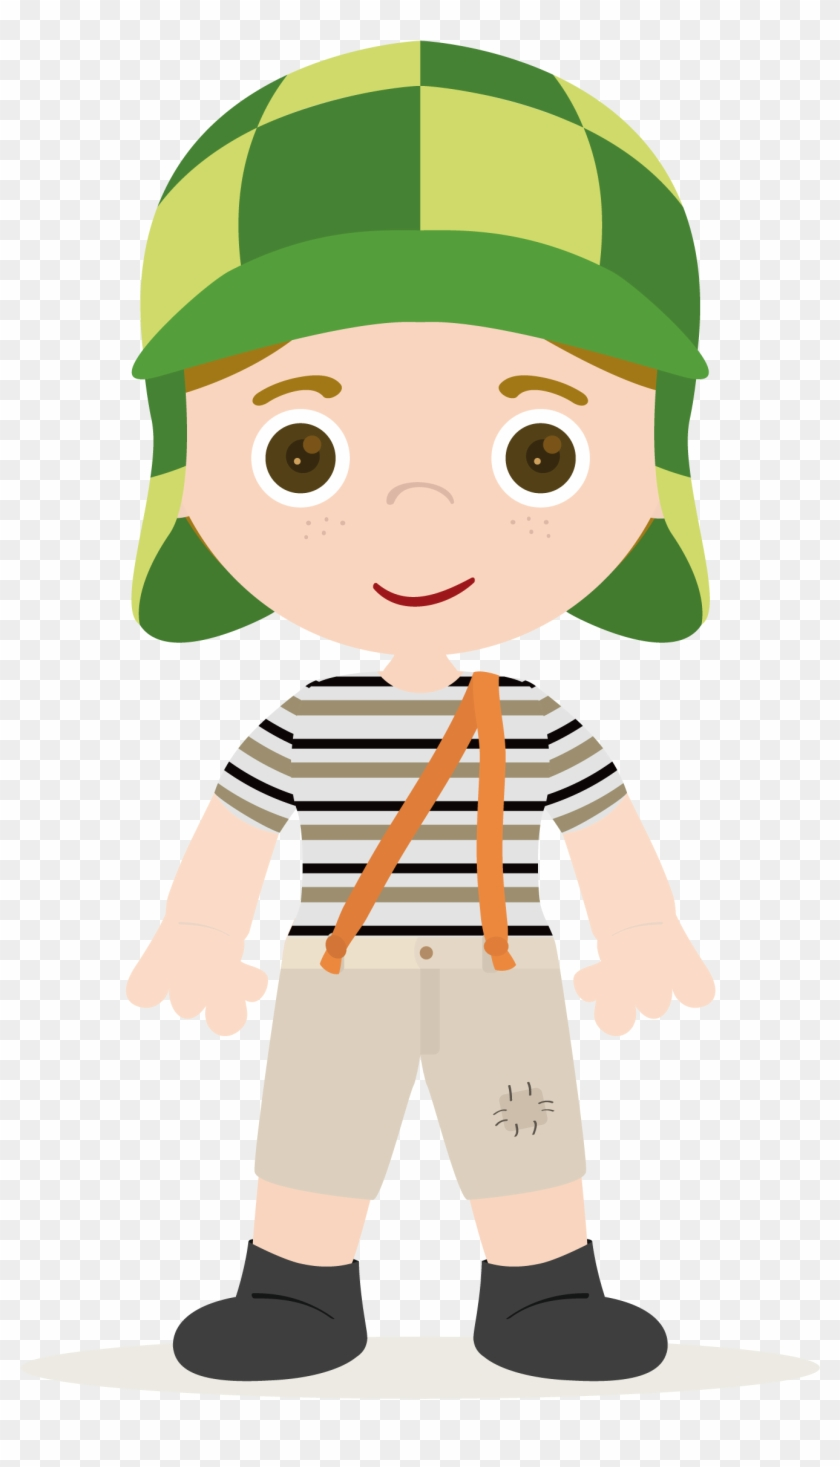 Discover Ideas About Clip Art - Clipart Chaves #8271